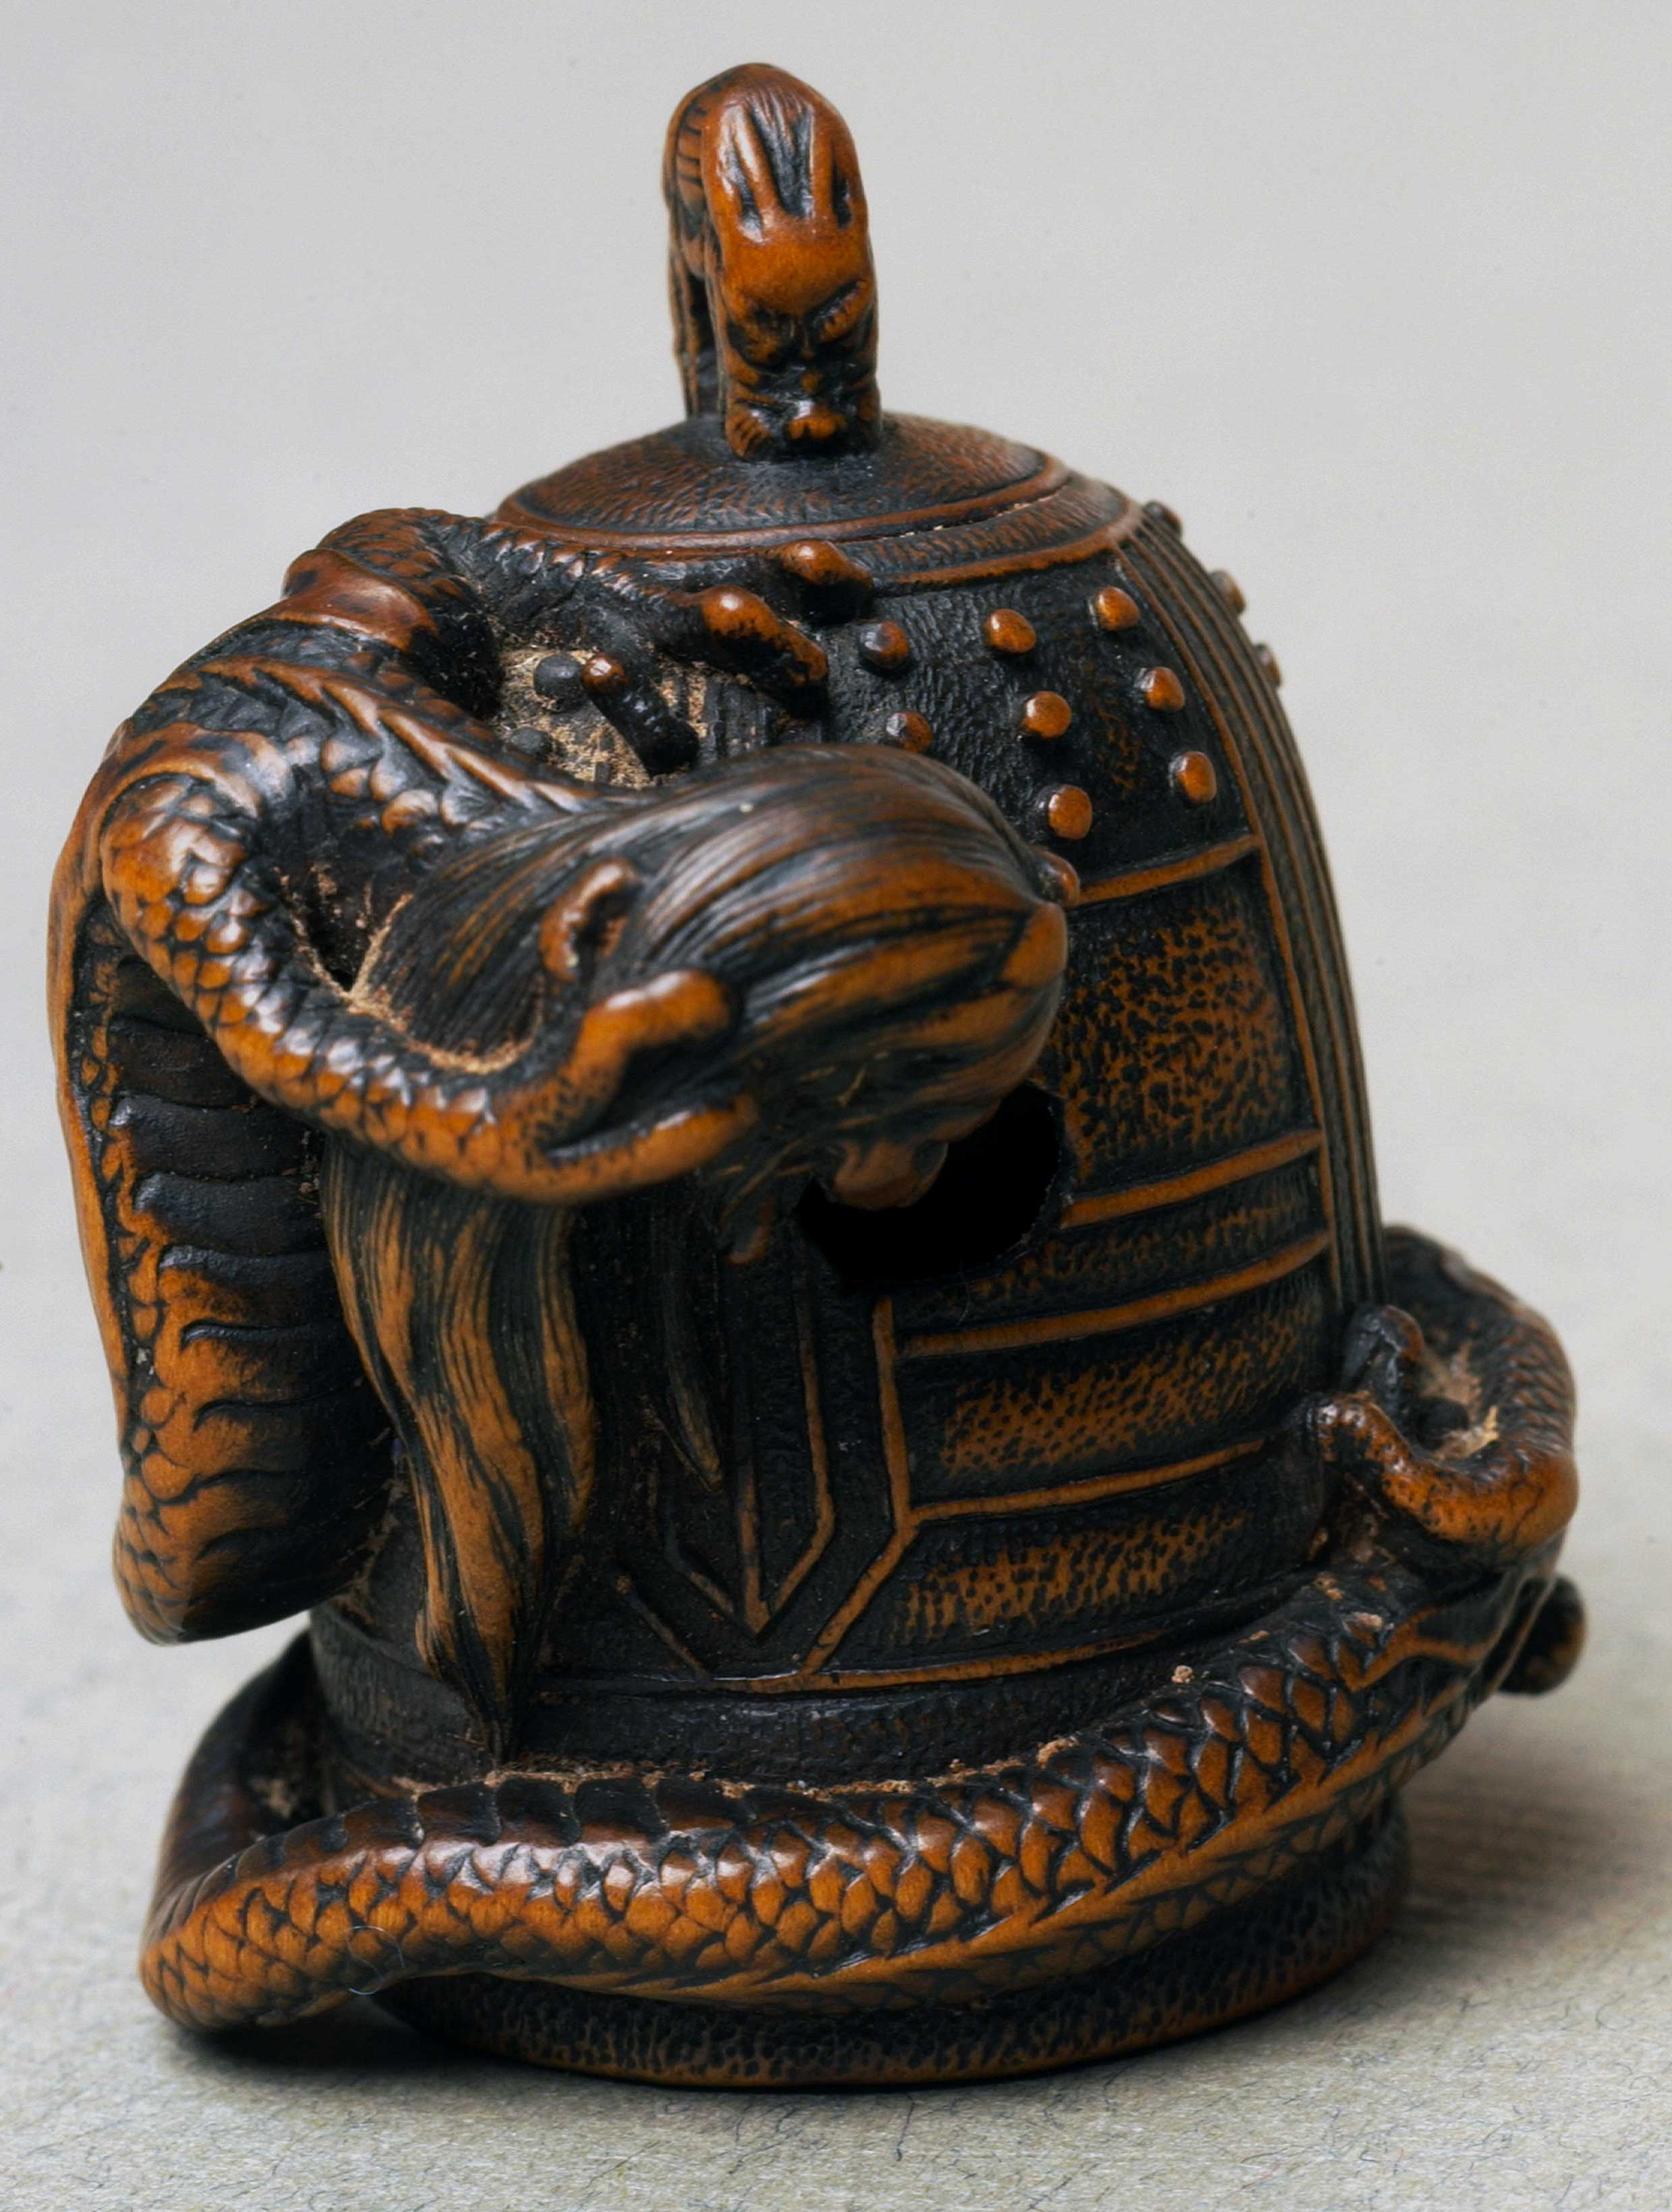 Netsuke depicting a dragon